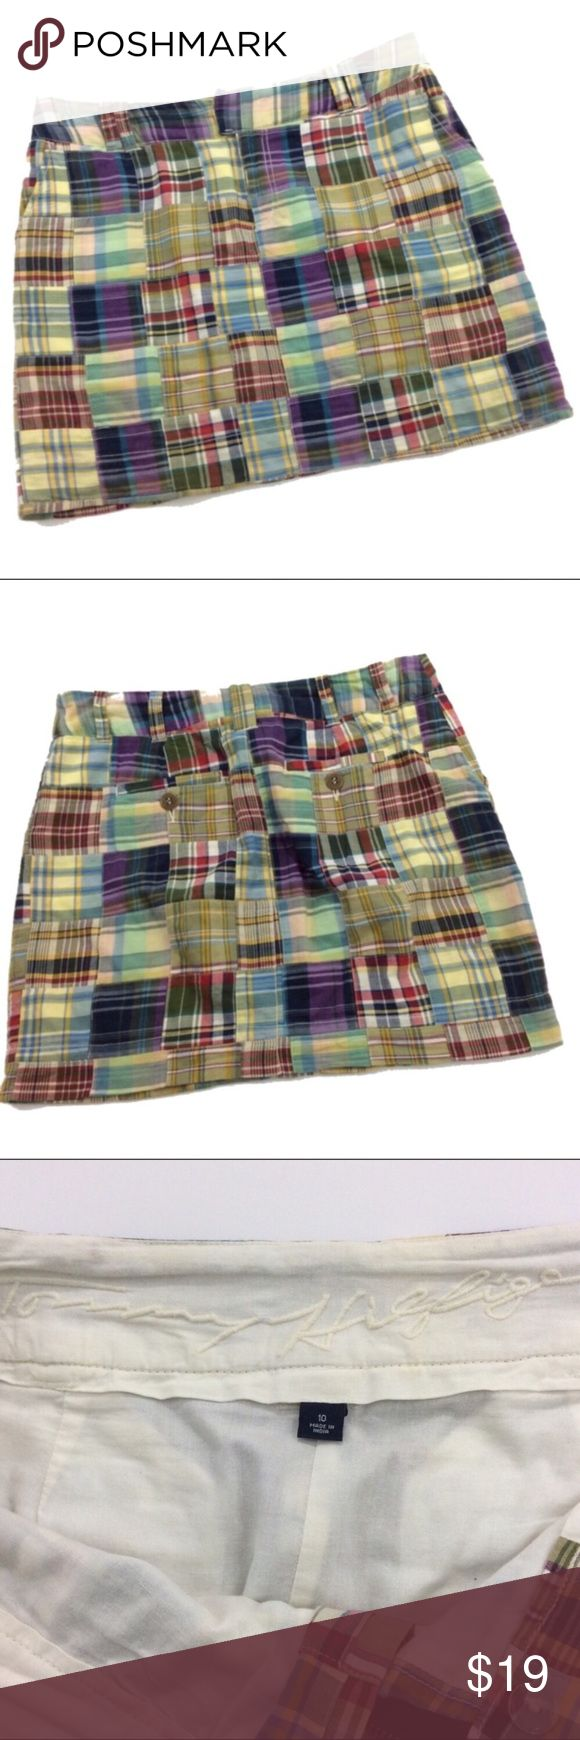 Tommy Hilfiger madras plaid skirt  size 10 Tommy Hilfiger madras plaid skirt, great for summer size 10. Skirt has a four-inch front  zipper with hook closure, fully lined, belt loops, 2/front slash pockets and two back pockets with buttons. Made 100% cotton. Measurements taken from the back with garment laying flat, waist is 34 inches length is 18 inches, all measurements are approximate. Spring break, summer Tommy Hilfiger Skirts